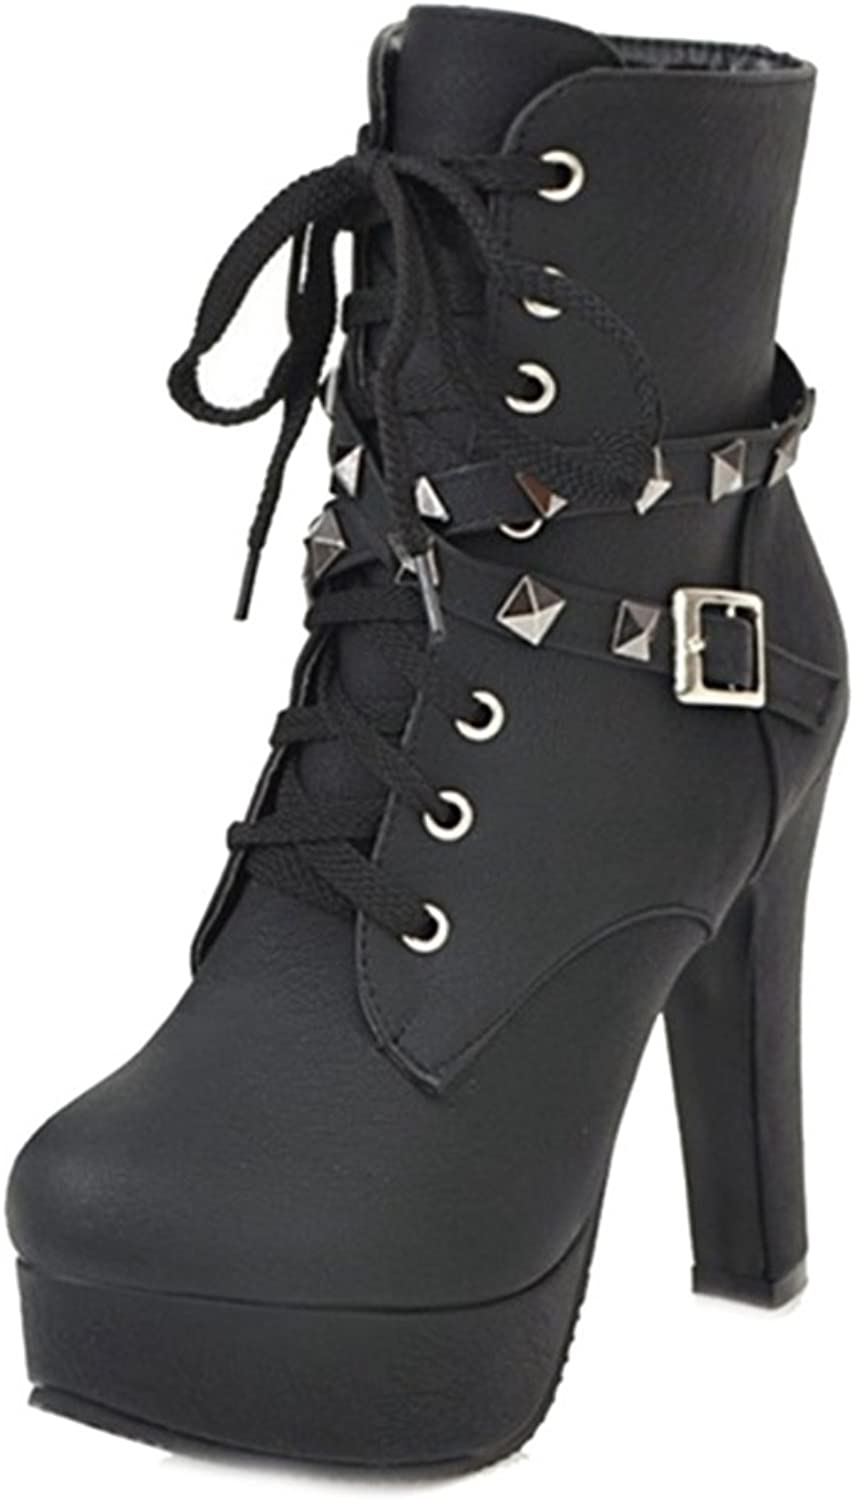 Cocey Martin Boots with Lace Up and Rivets for Fashion Women Ankle Boots with Large